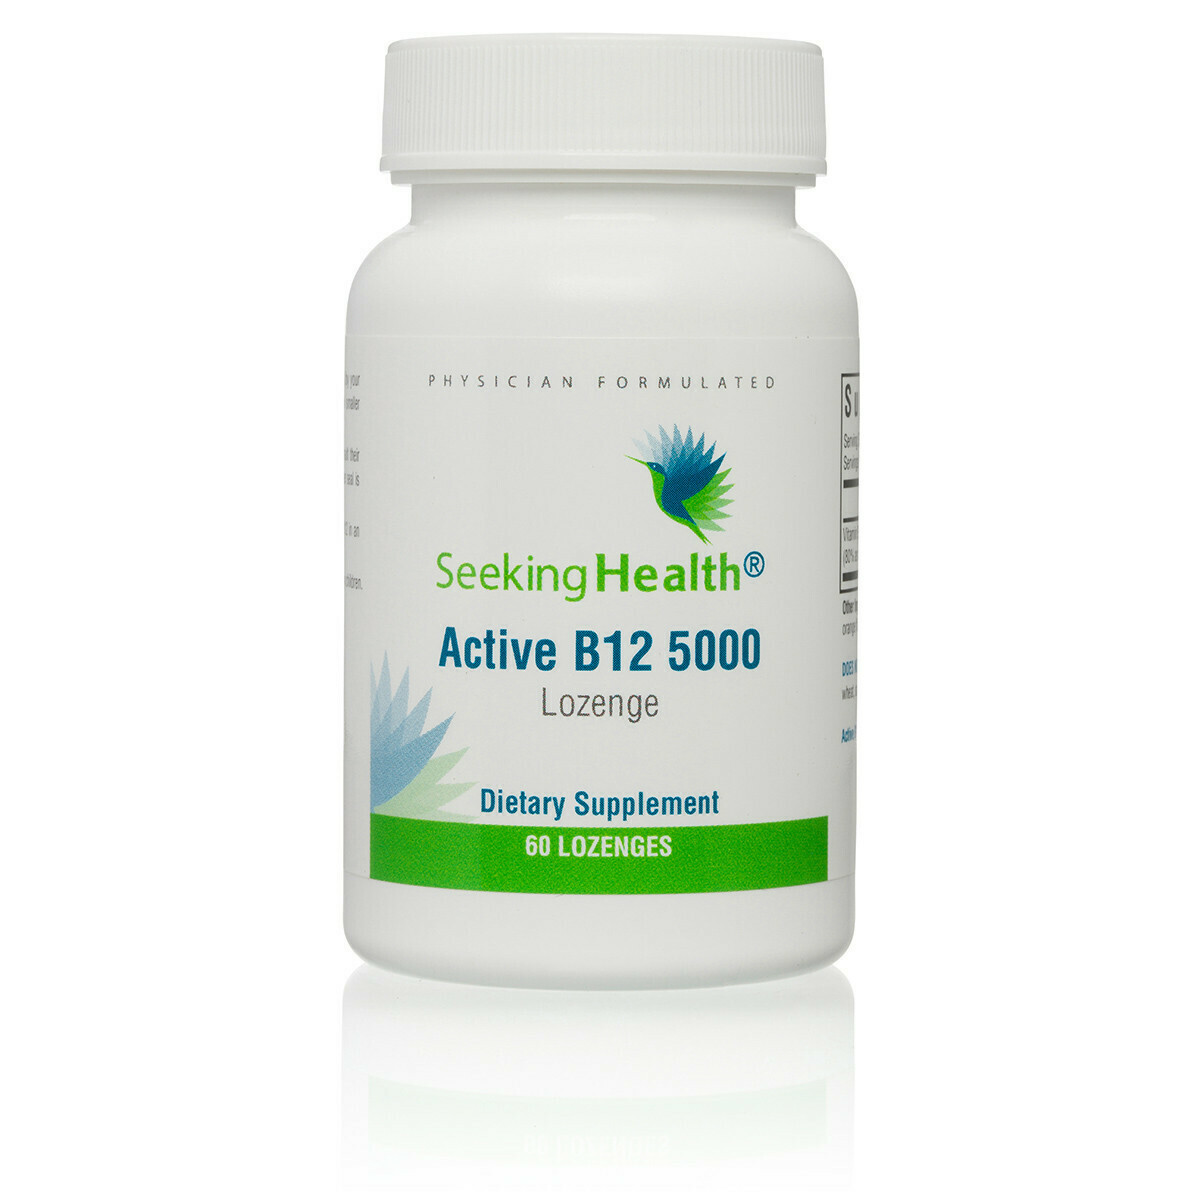 ACTIVE B12 5000 - 60 LOZENGES Seeking Health